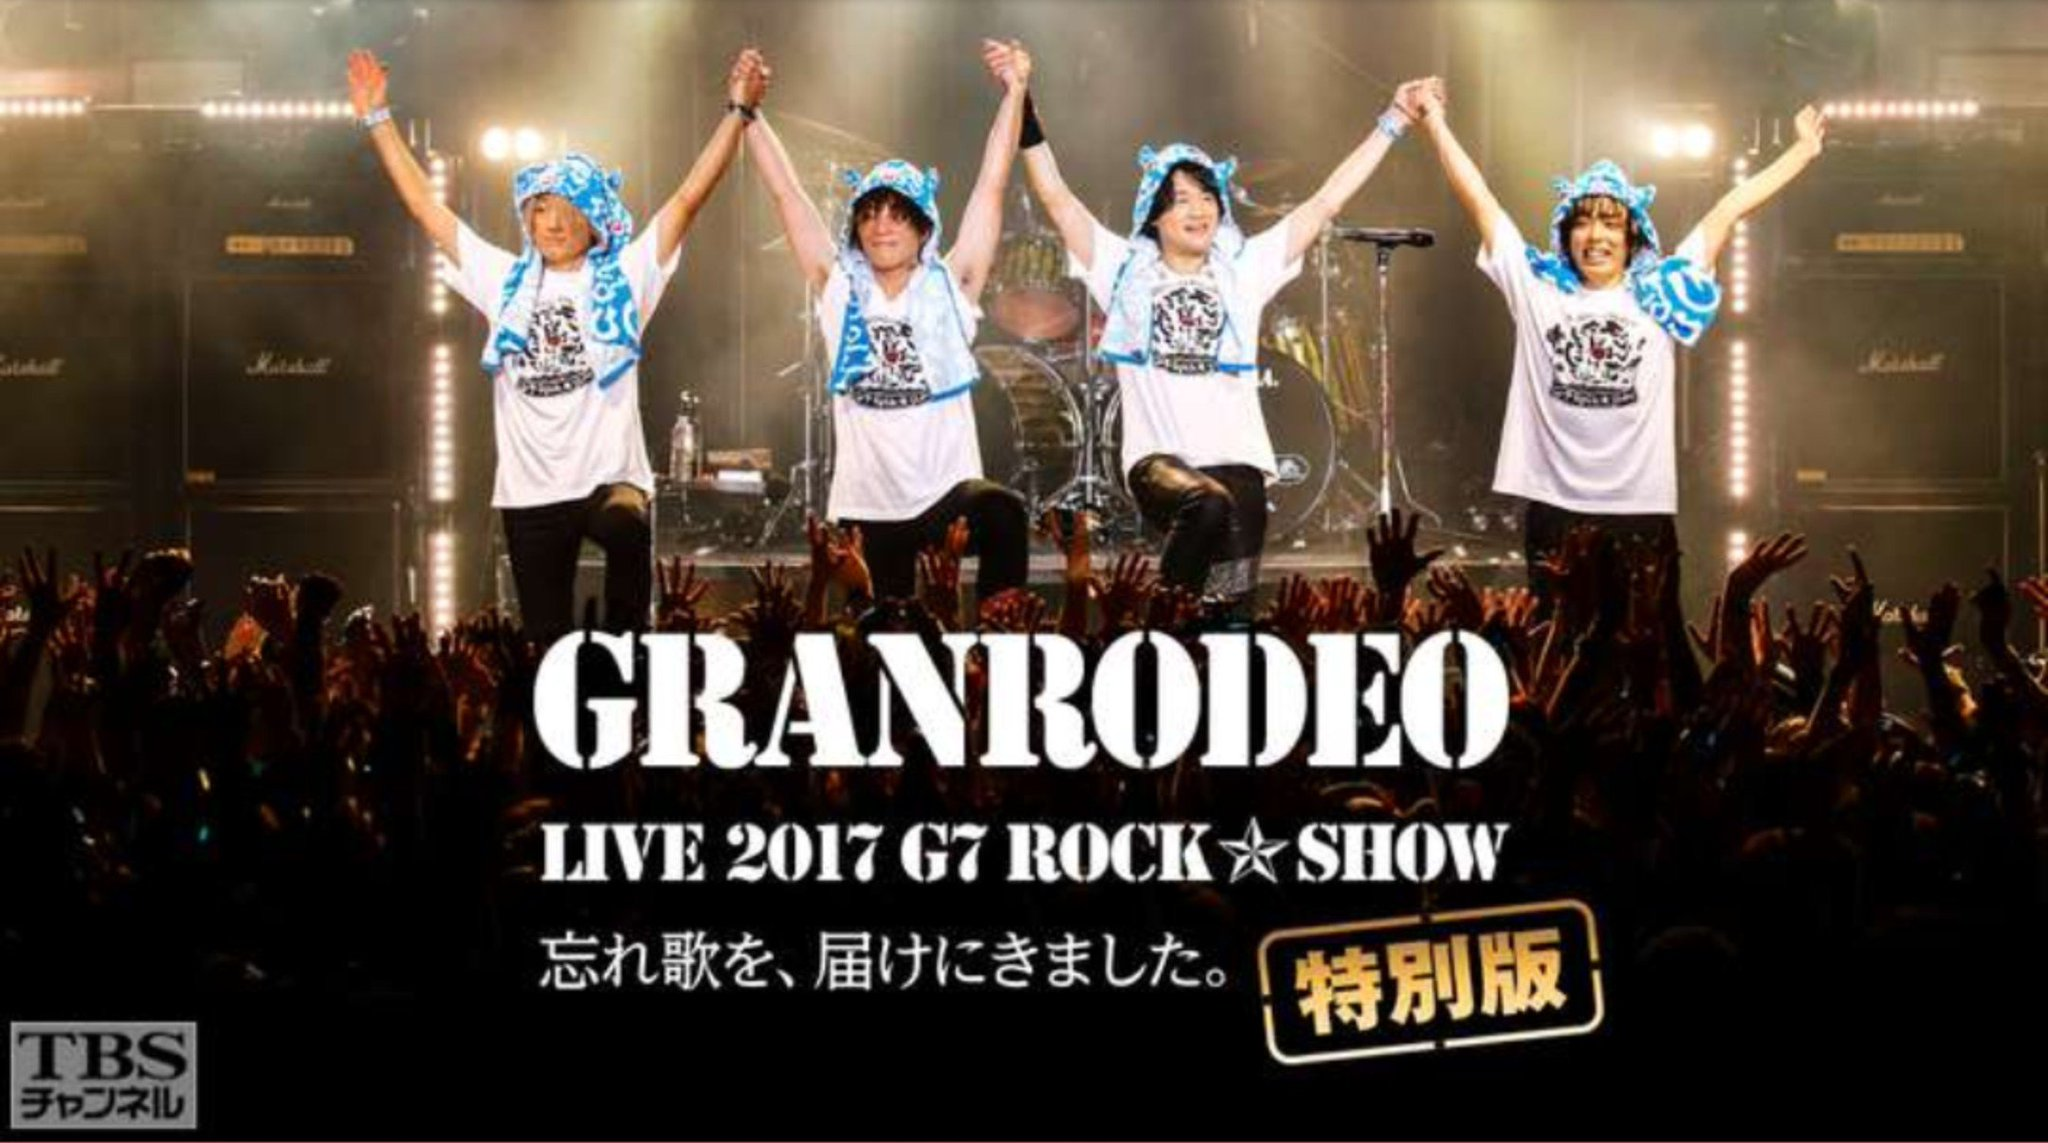 Cheminées Du Rock 2017 Tomoko 本日jmf参戦 On Twitter Quotgranrodeo Live 2017 G7 Rock